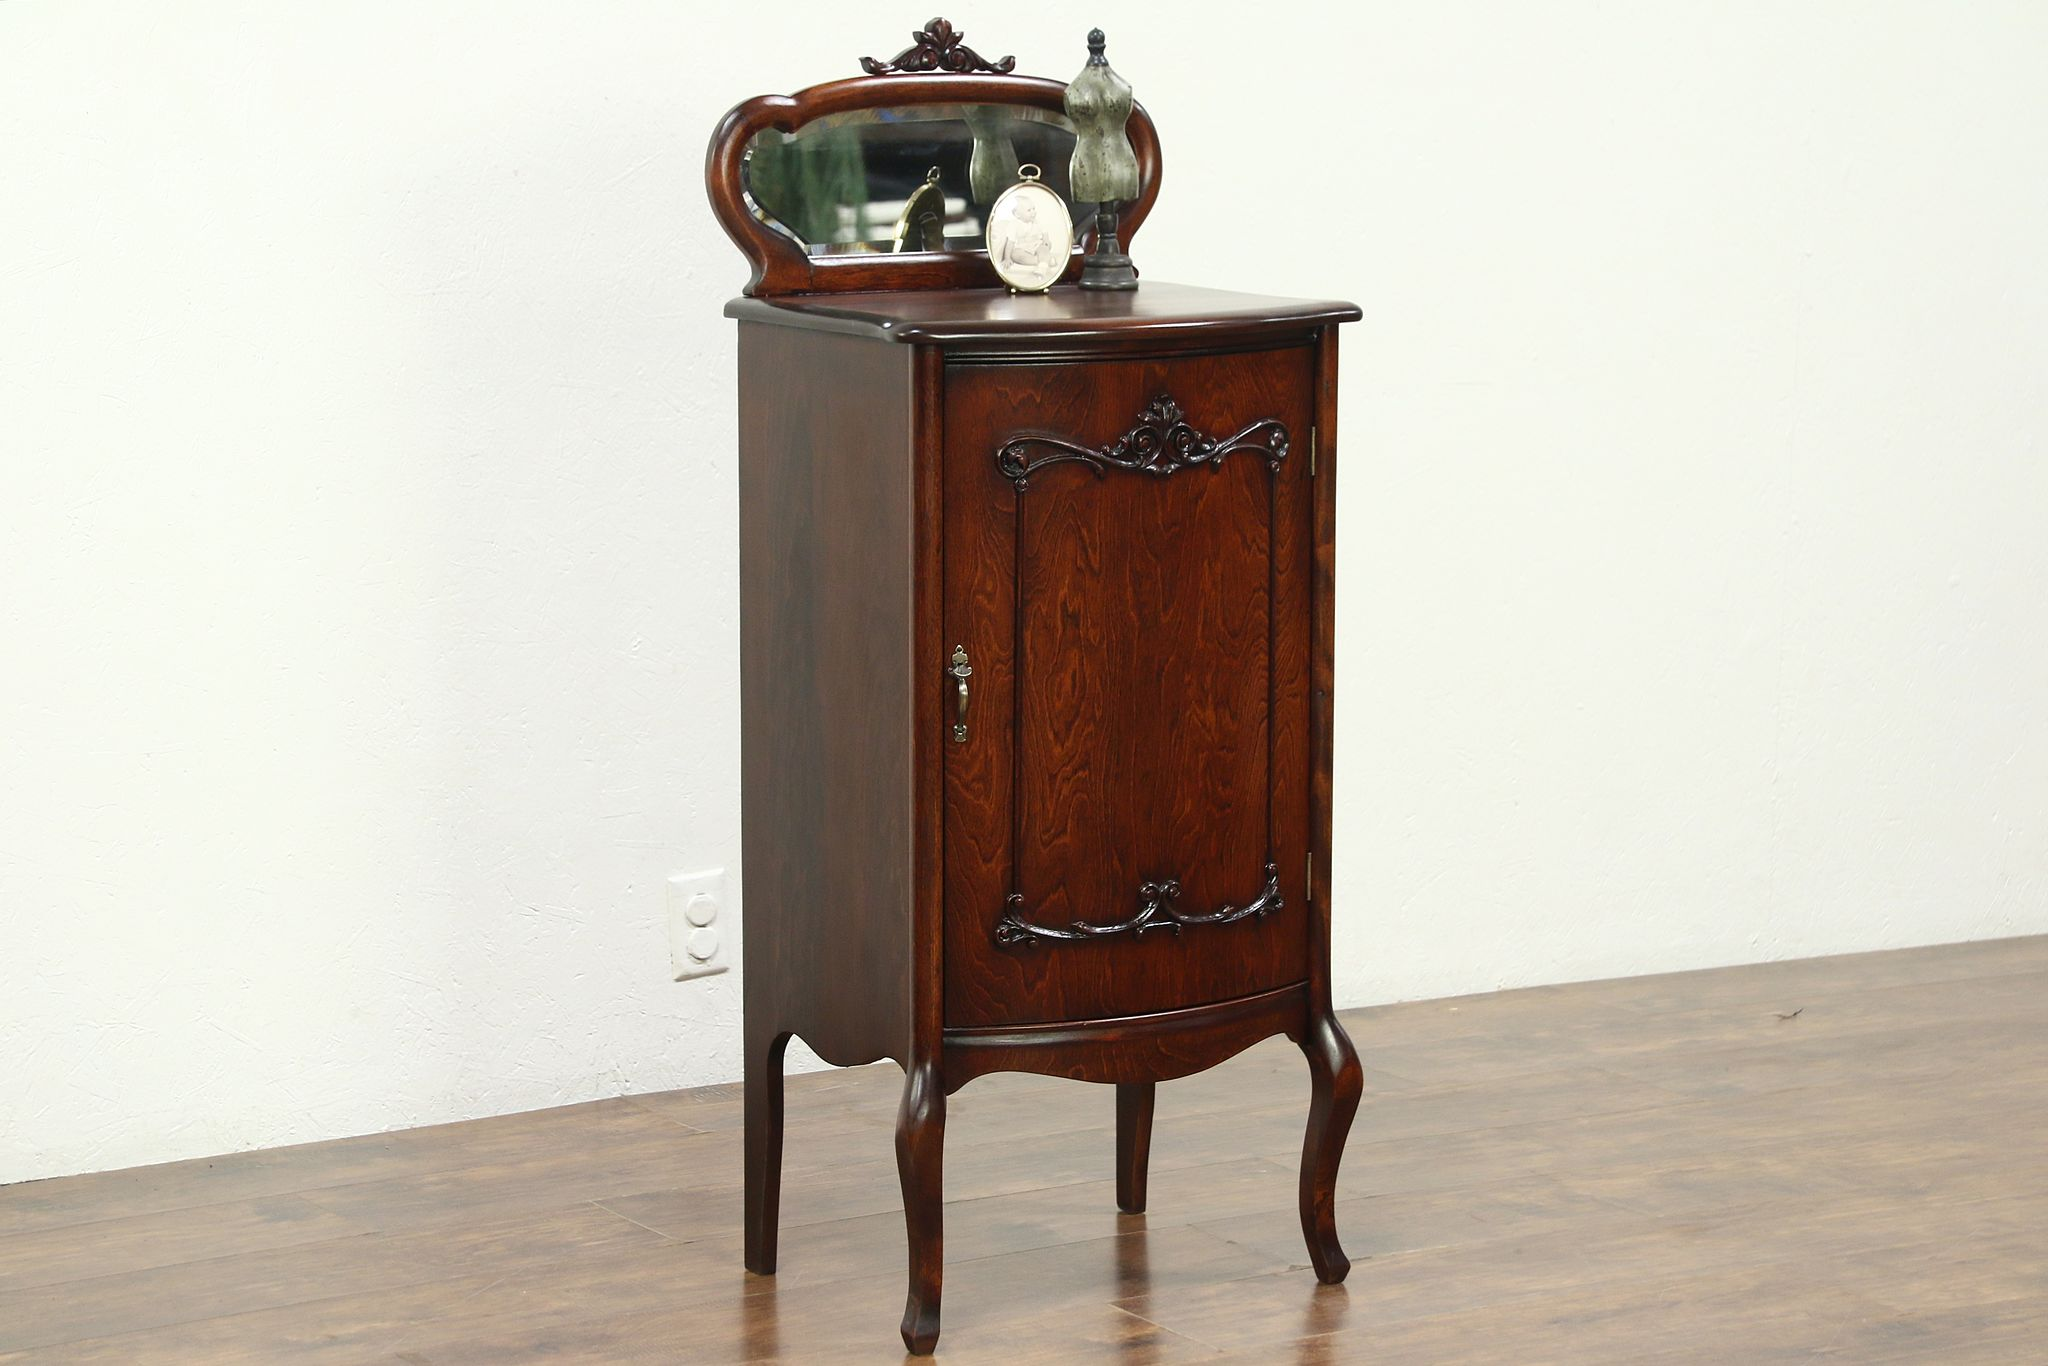 Beau Music Cabinet Or Collector File, 1900 Antique, Beveled Mirror ...